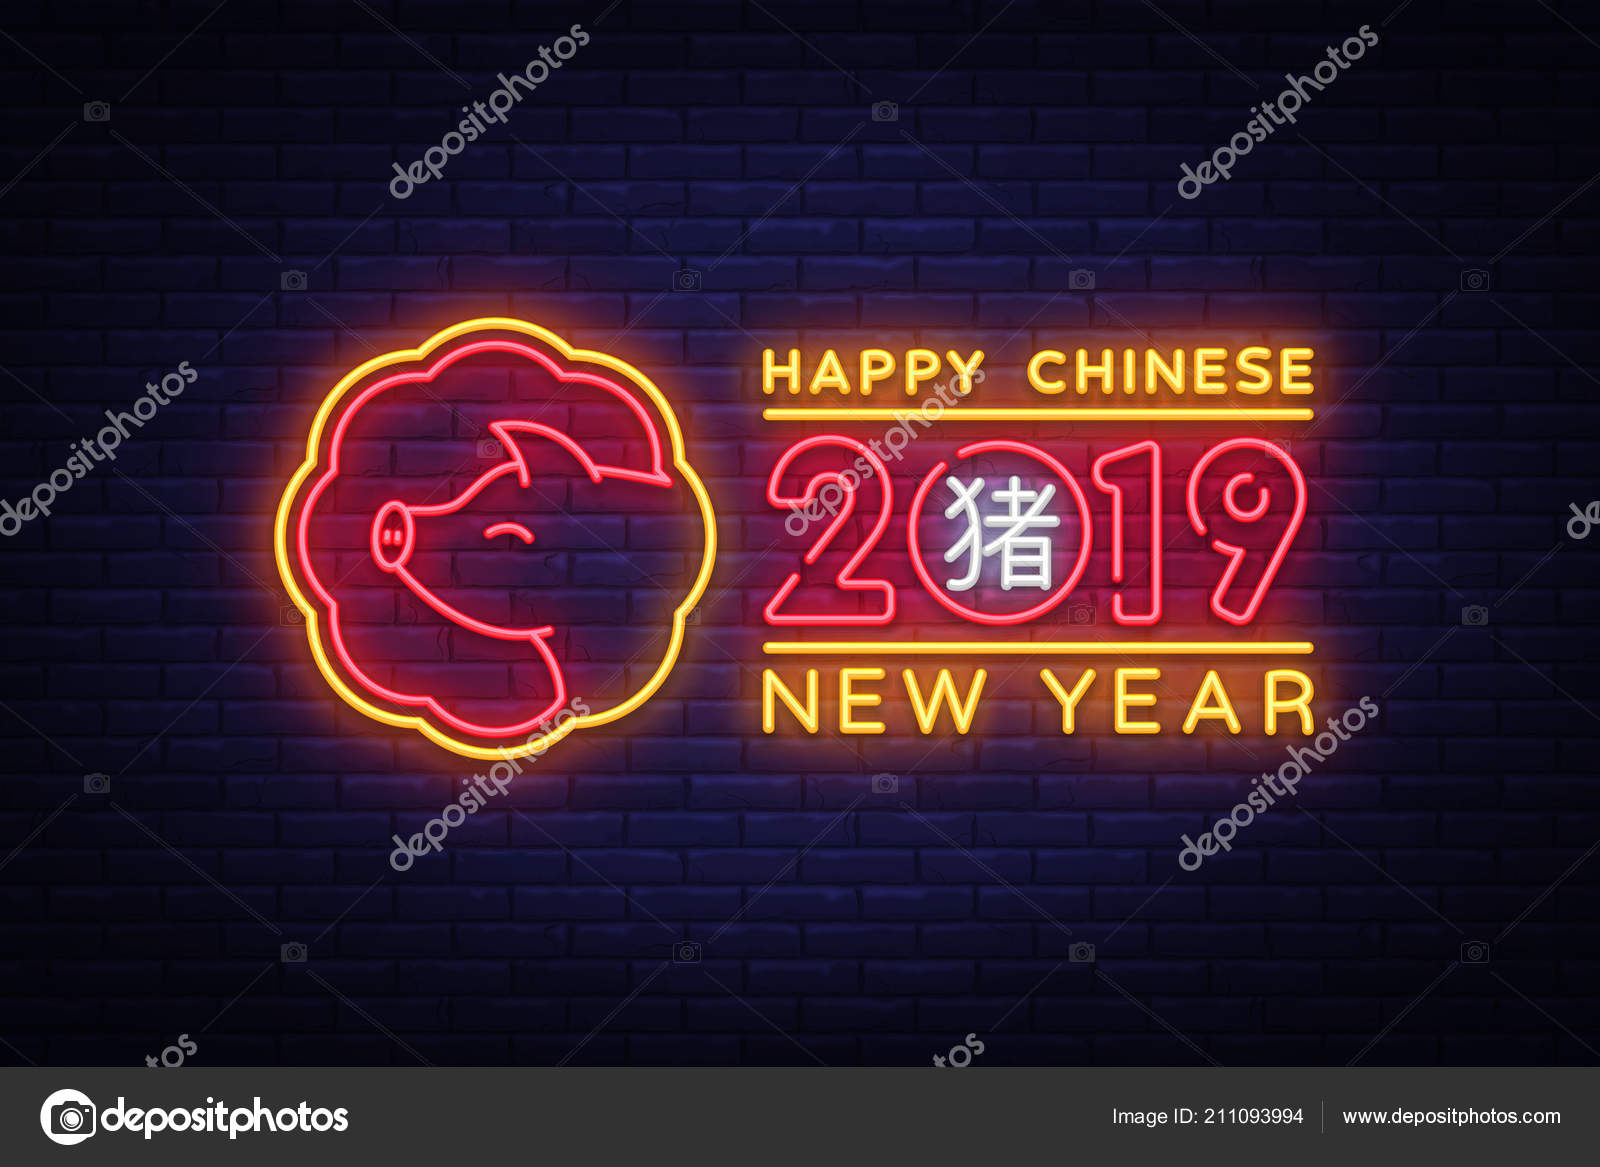 happy chinese new year 2019 design template vector chinese new year of pig greeting card light banner neon style vector illustration vector by soifer